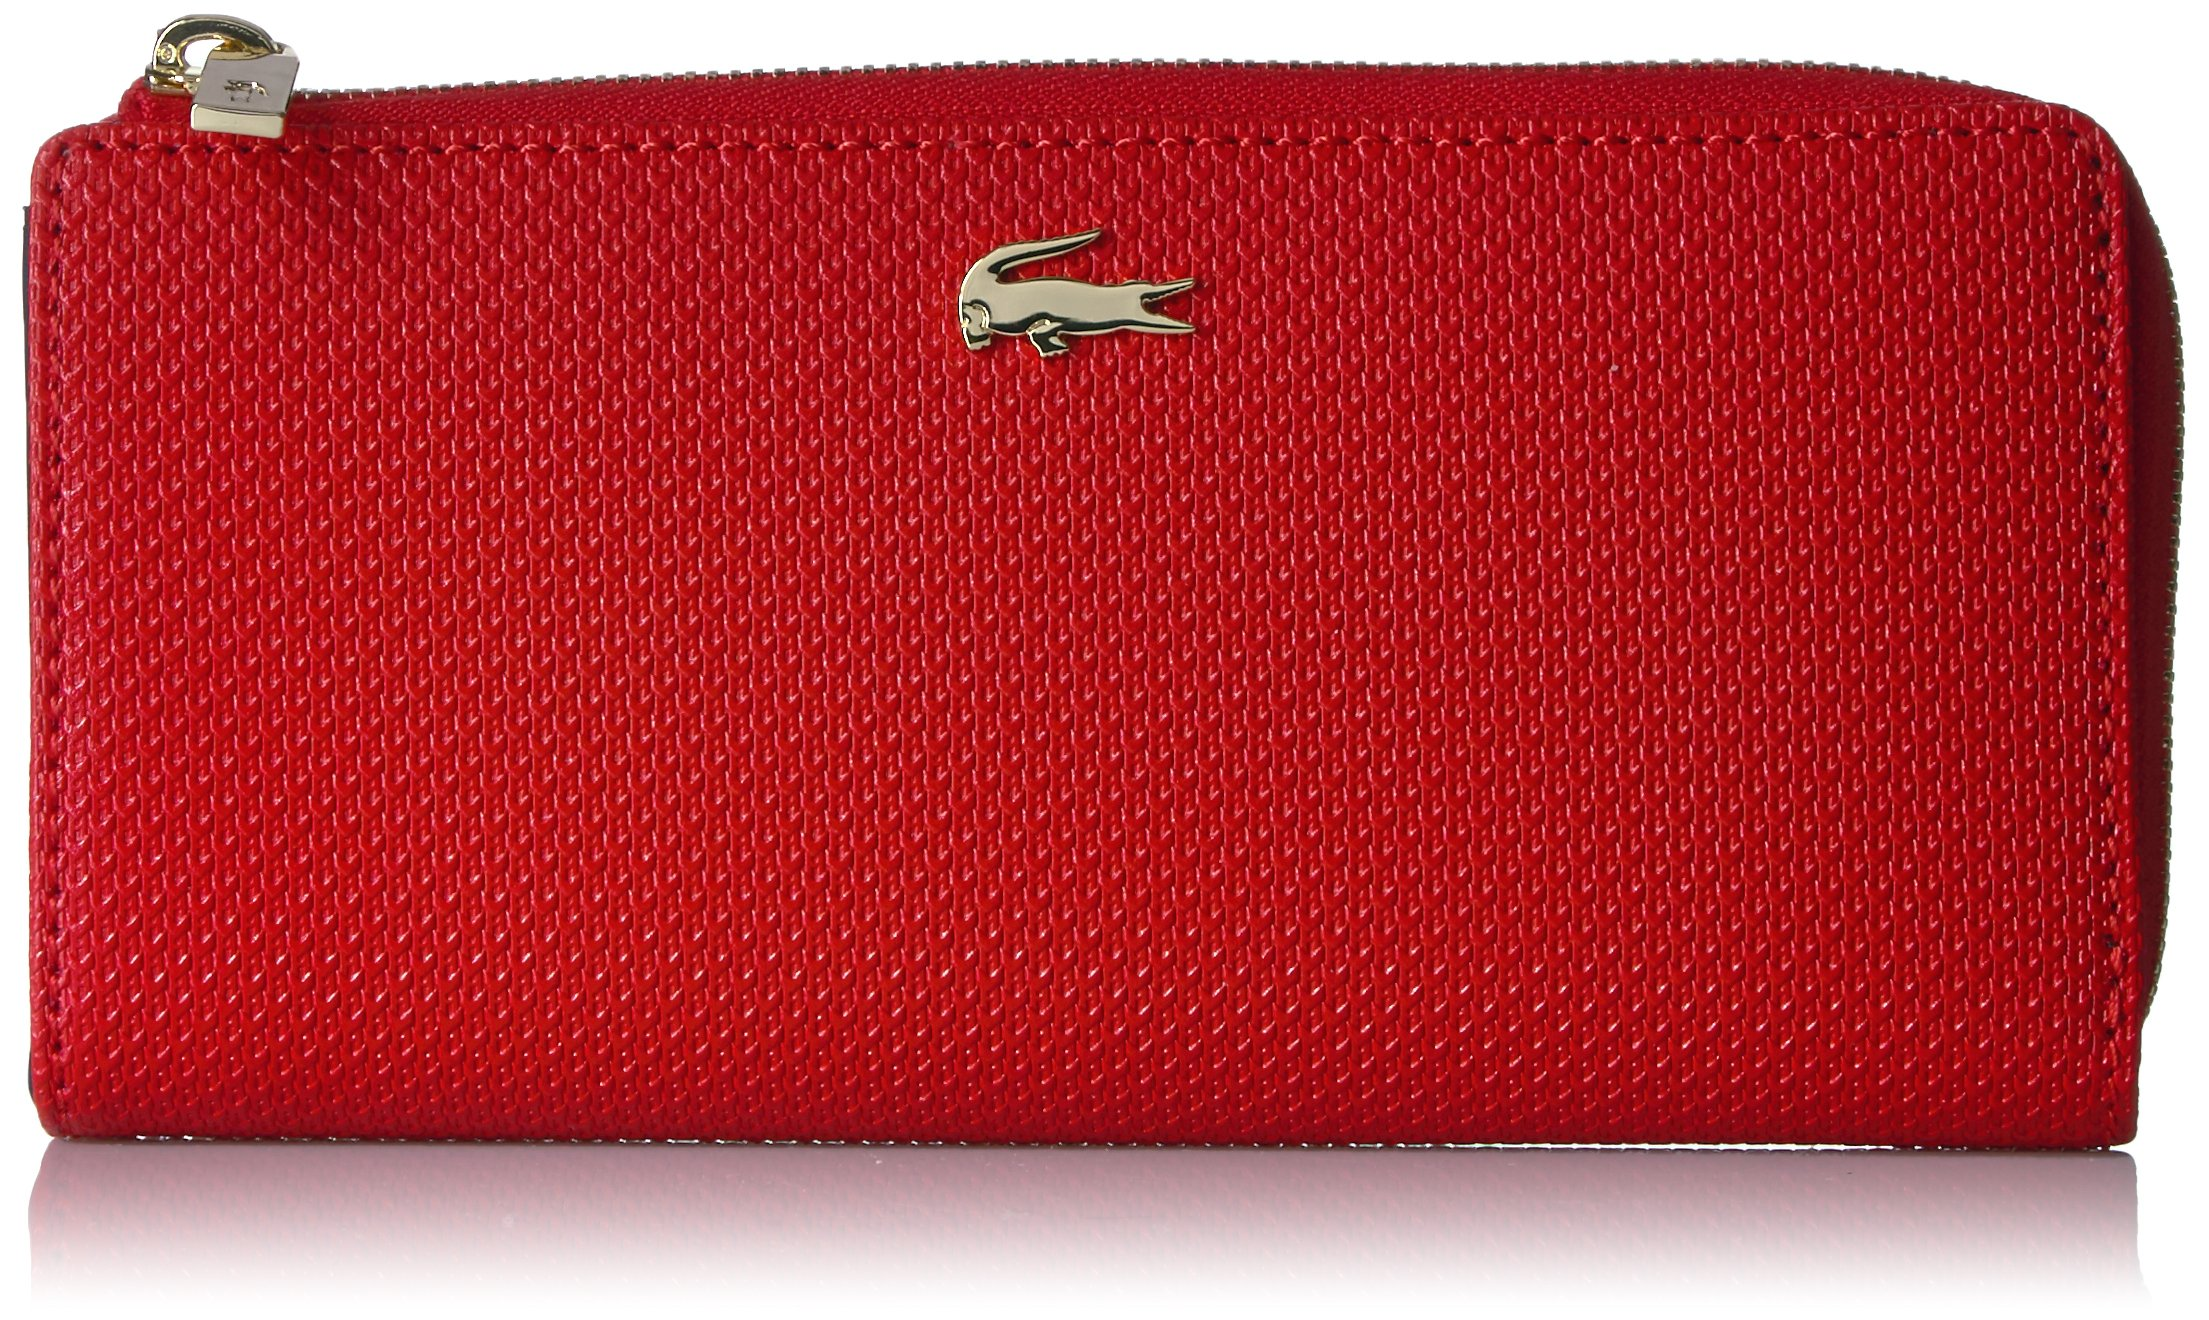 Lacoste Chantaco Slim Zip Wallet Wallet